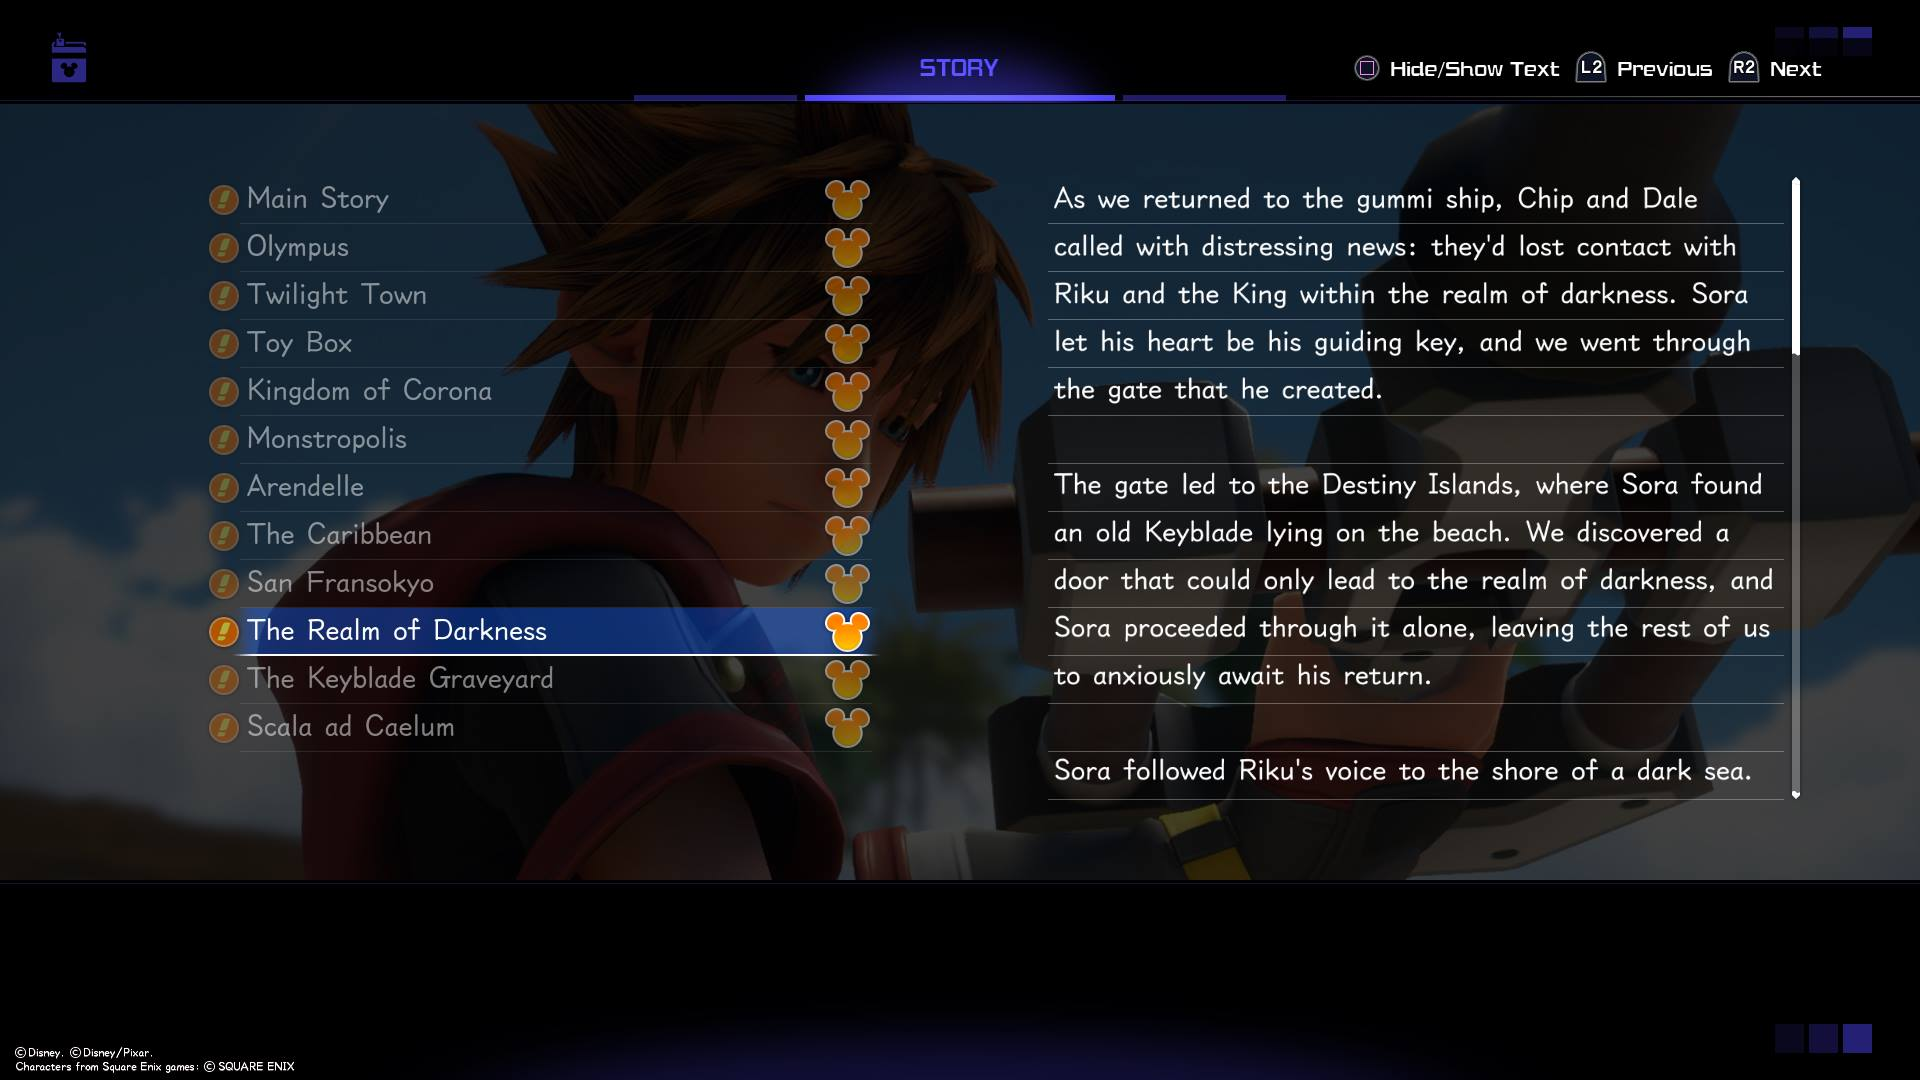 The 9th world to unlock in Kingdom Hearts 3 is the Realm of Darkness which acts as an intro to The Keyblade Graveyard.